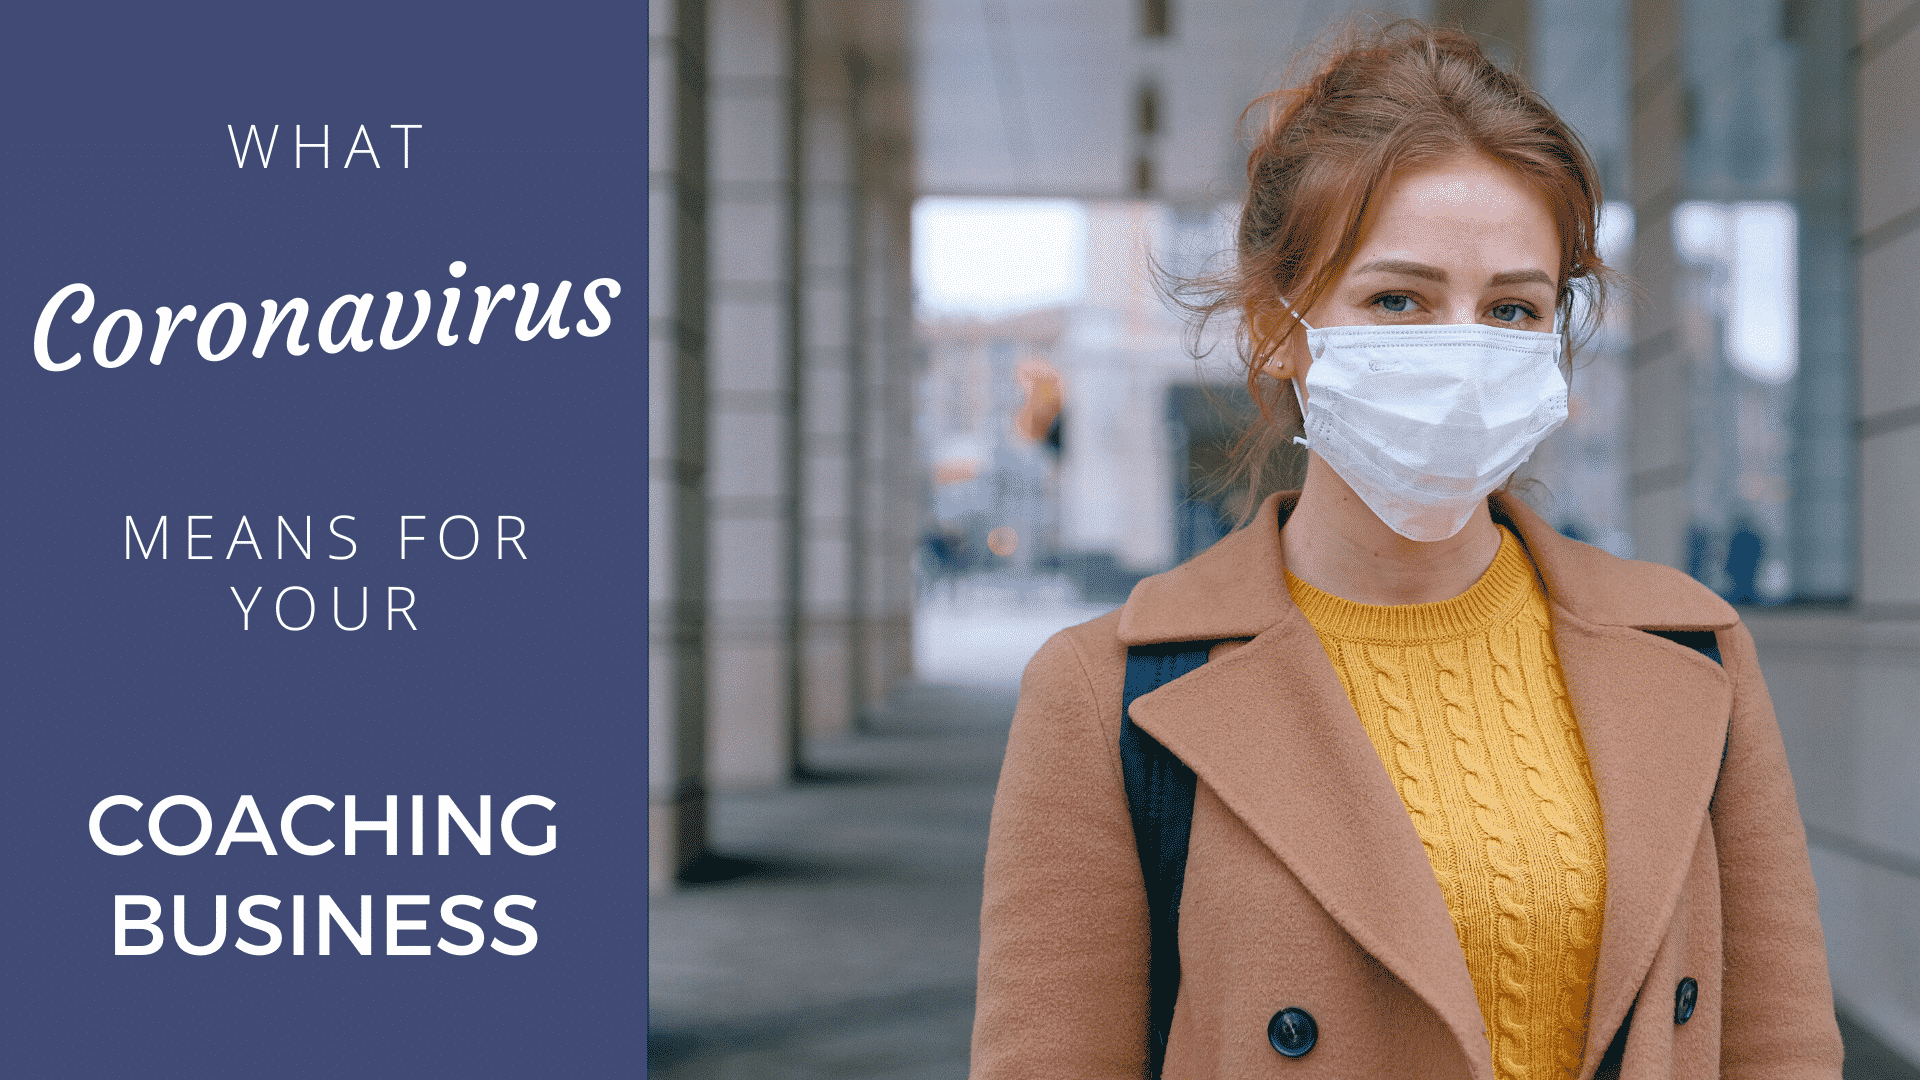 What Coronavirus (Covid-19) Means for Your Coaching Business